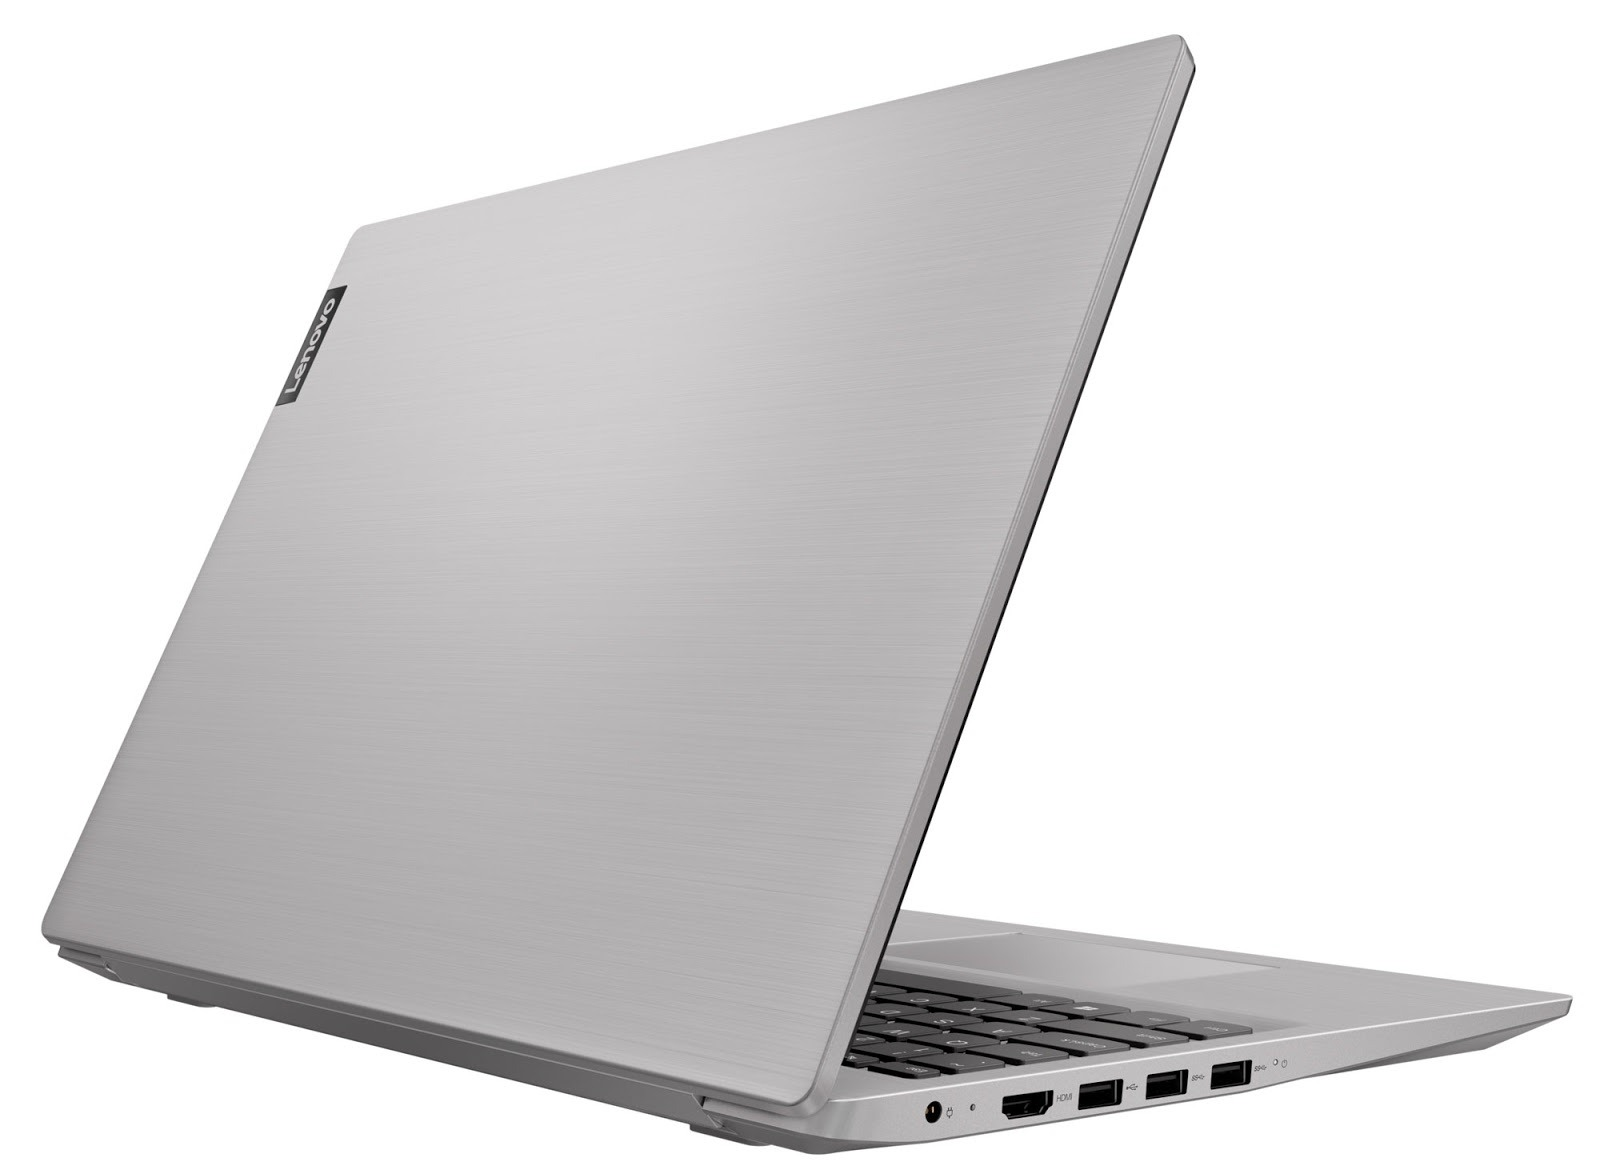 Фото 2. Ноутбук Lenovo ideapad S145-15IGM Platinum Grey (81MX003JRE)